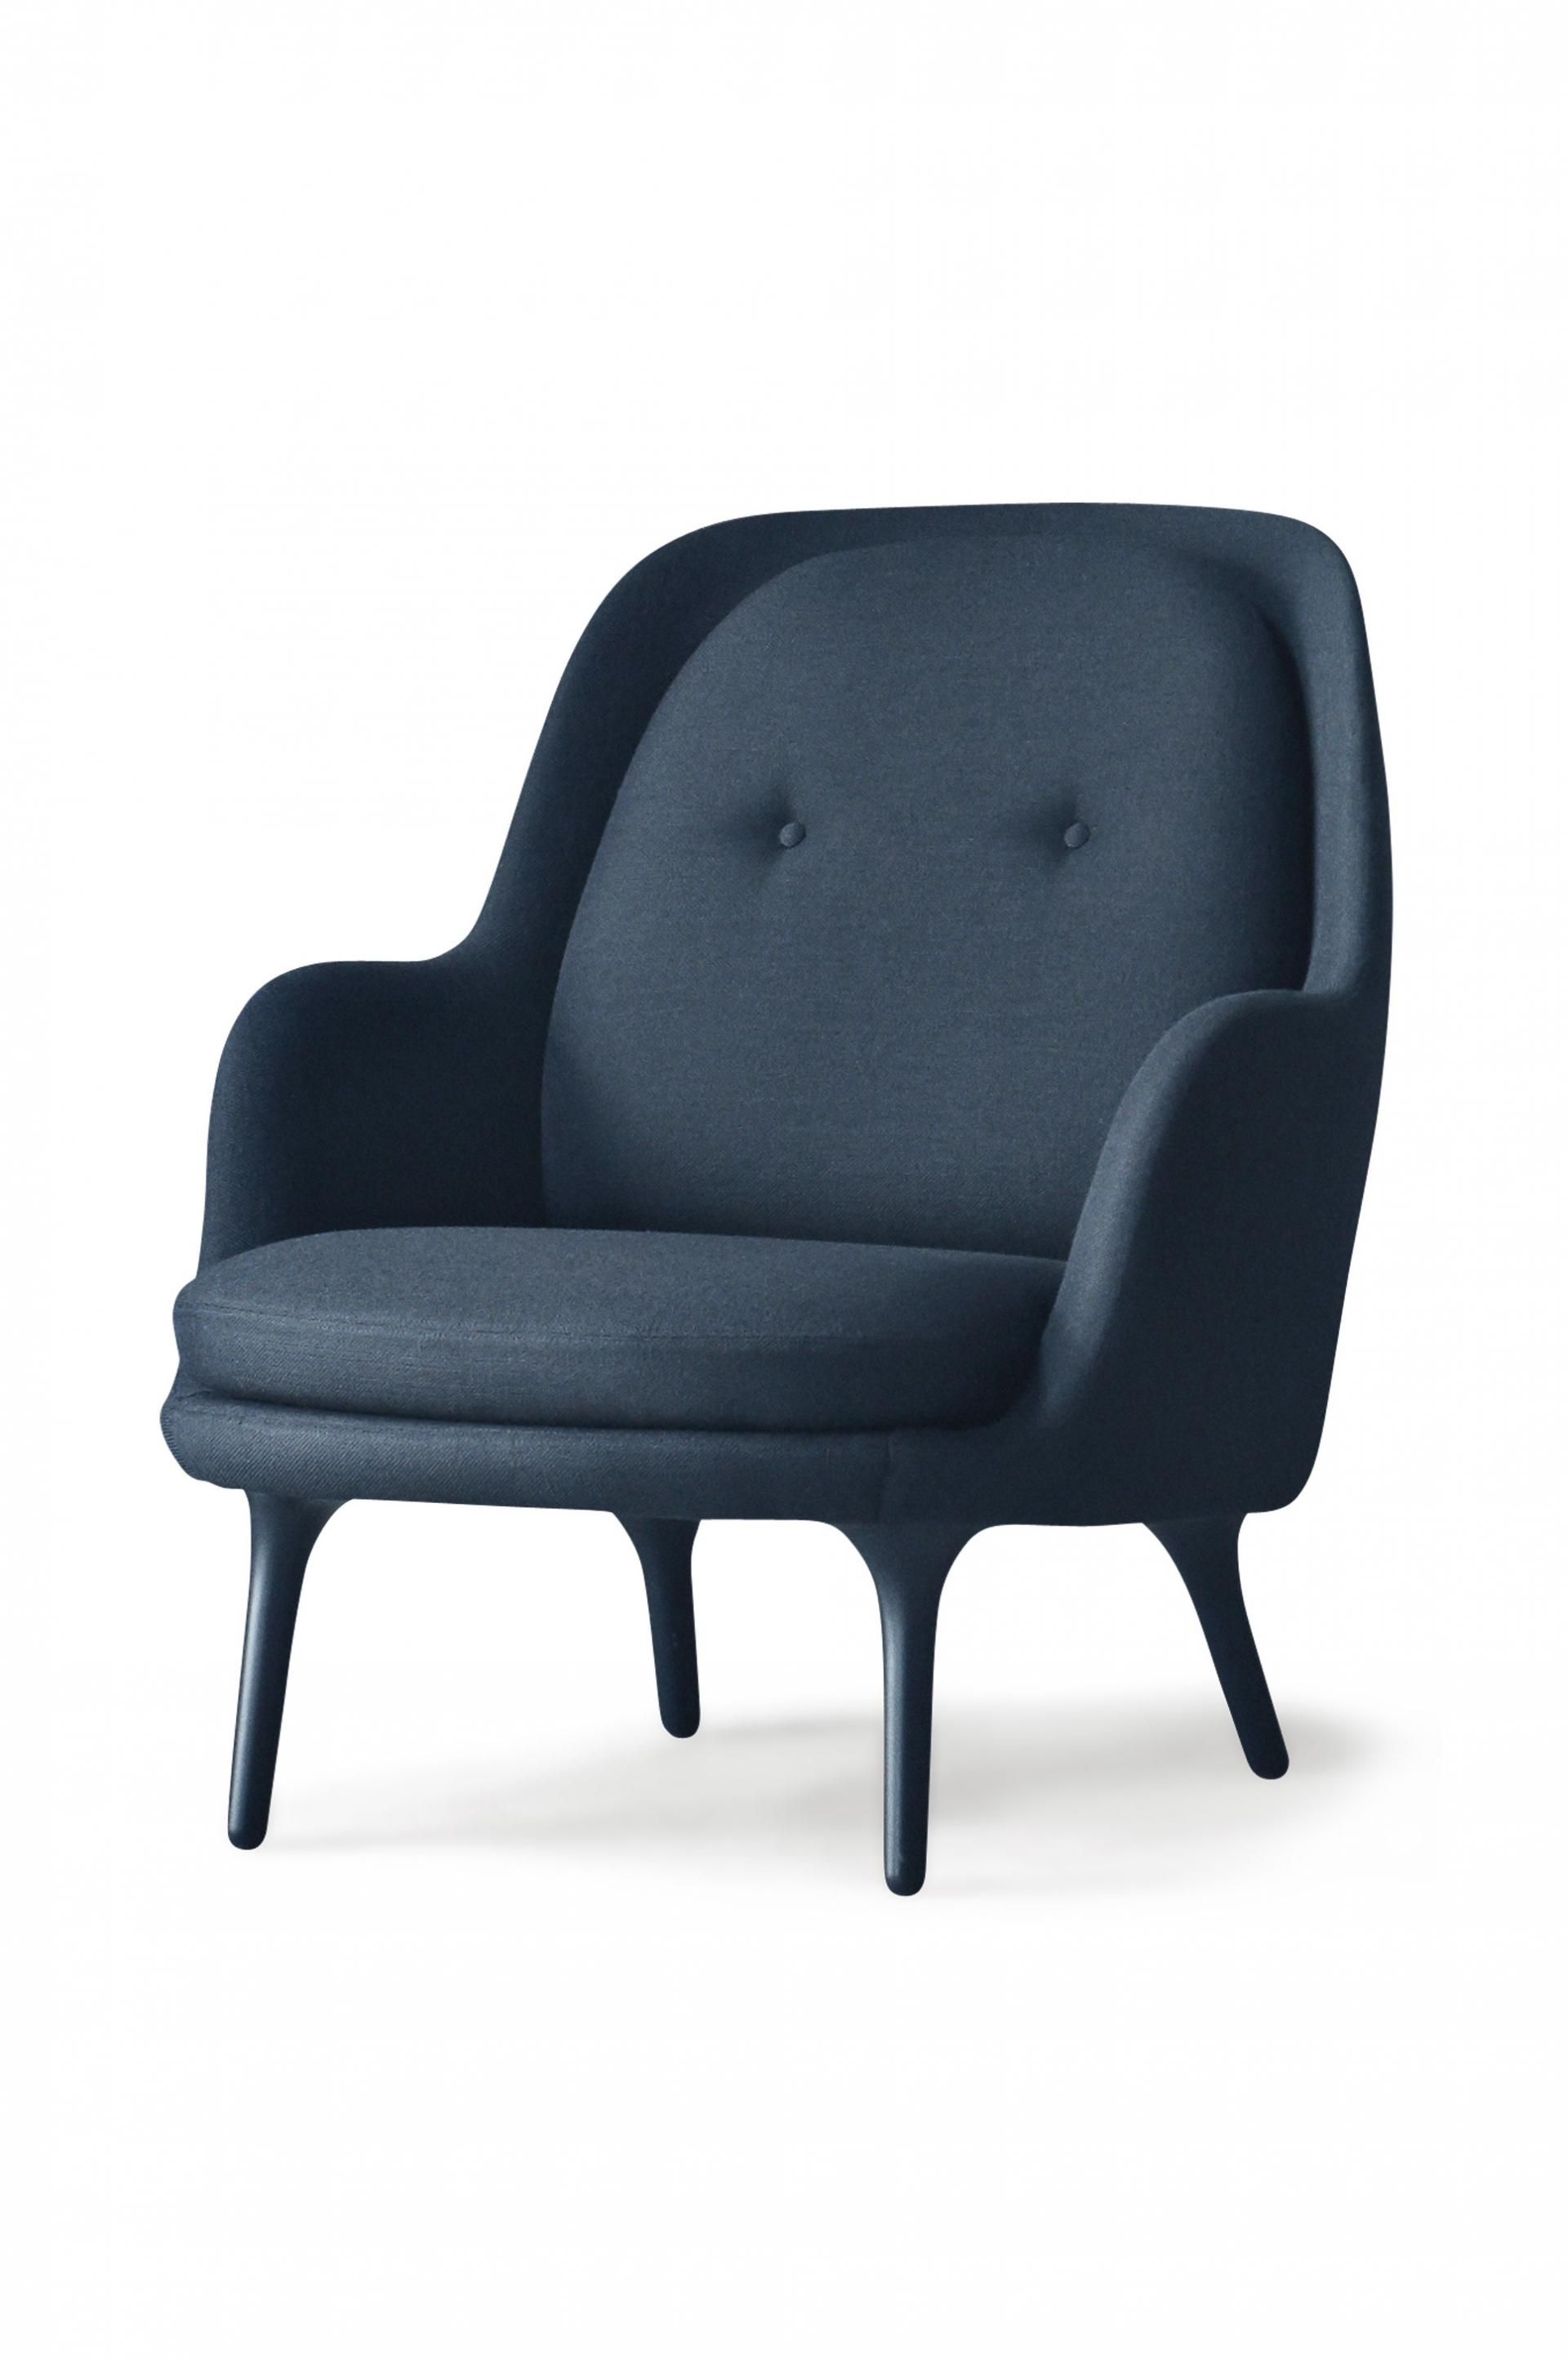 Fritz hansen fri armchair product furnishings for Modern design lounge chairs